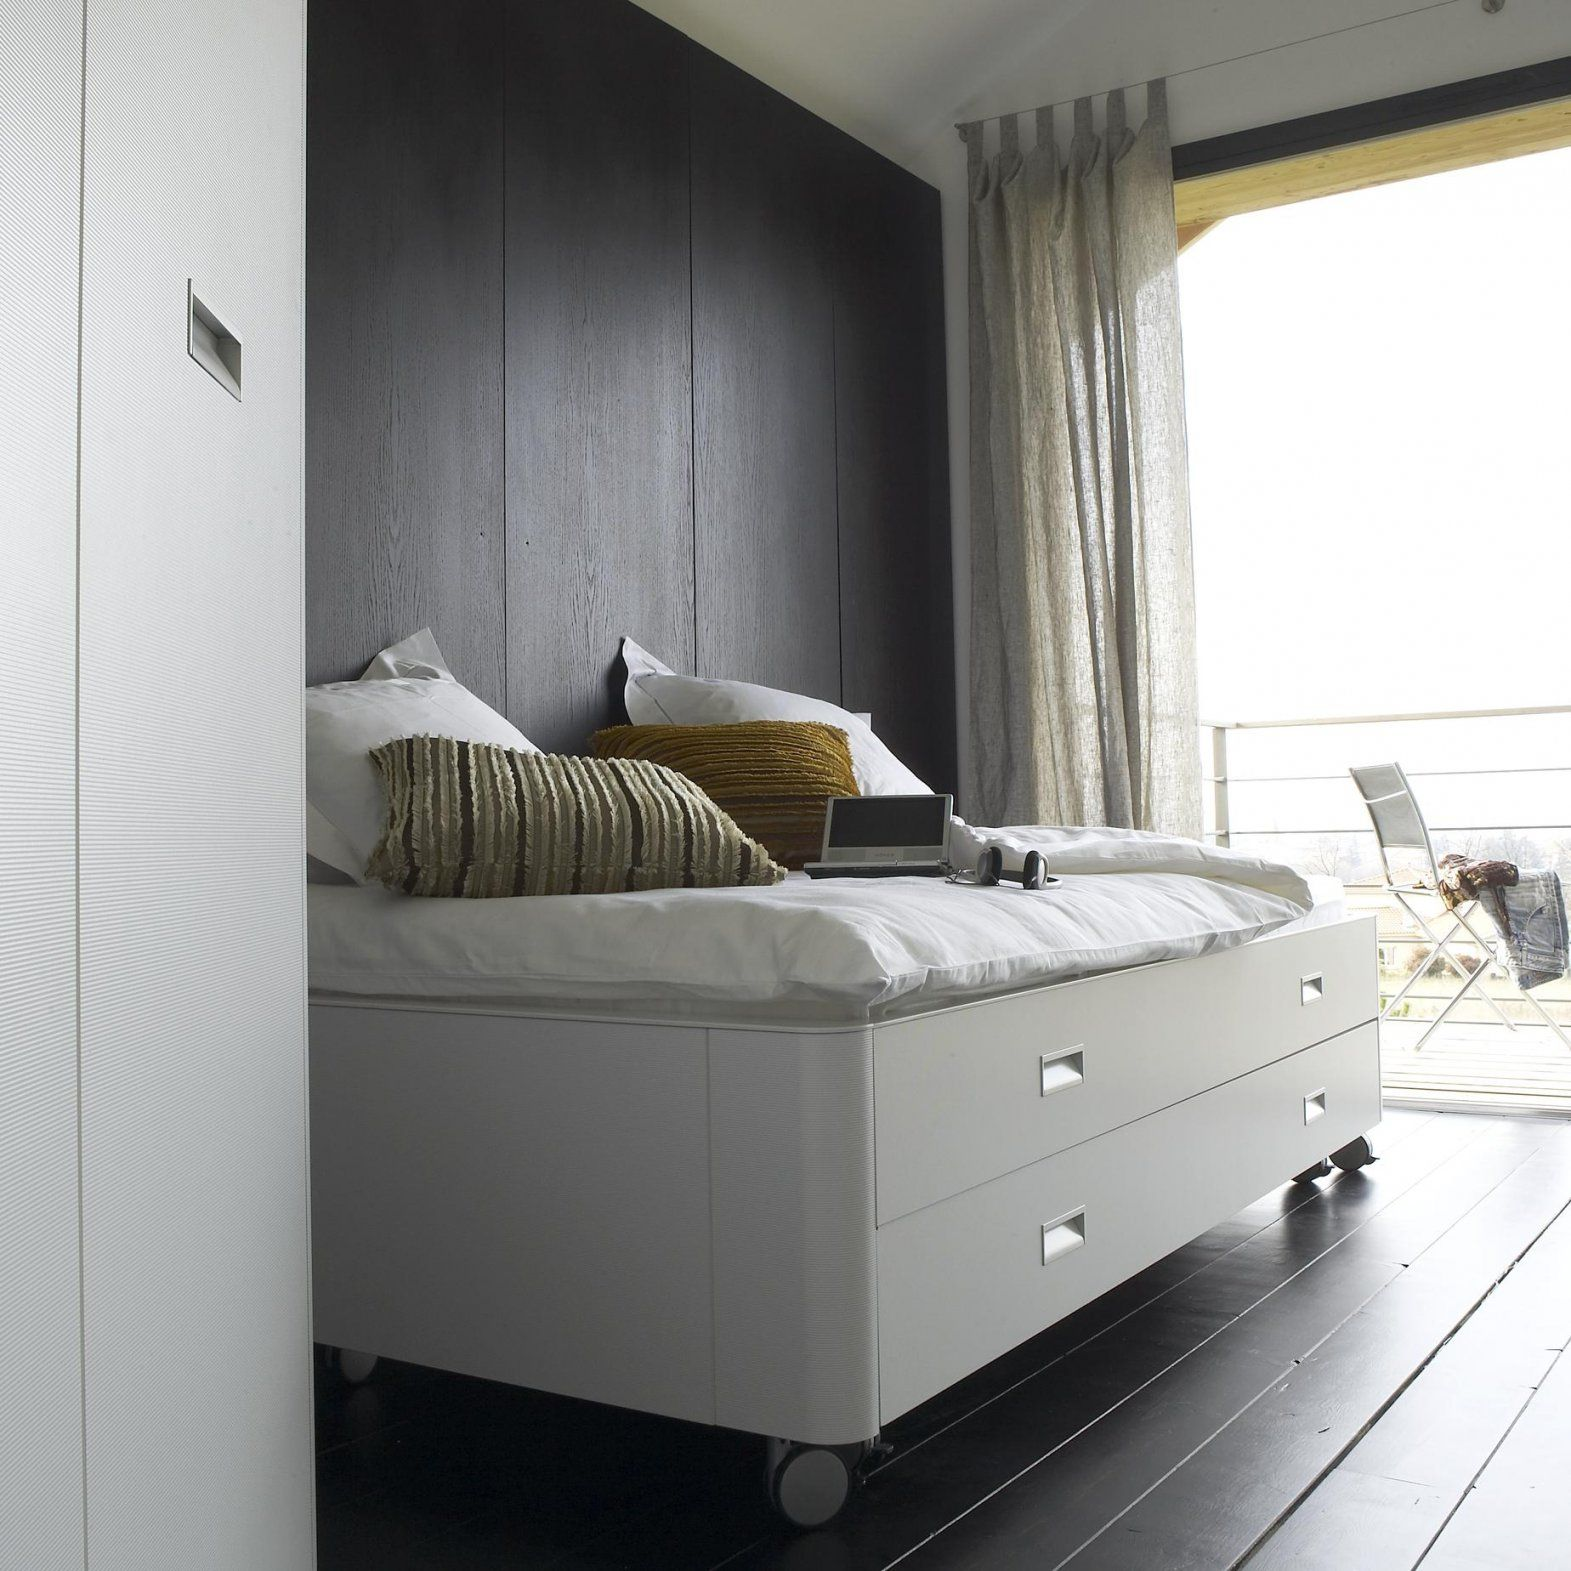 Travel Studio Beds From Designer  Pagnon & Pelhaître  Ligne Roset von Ligne Roset Travel Studio Photo